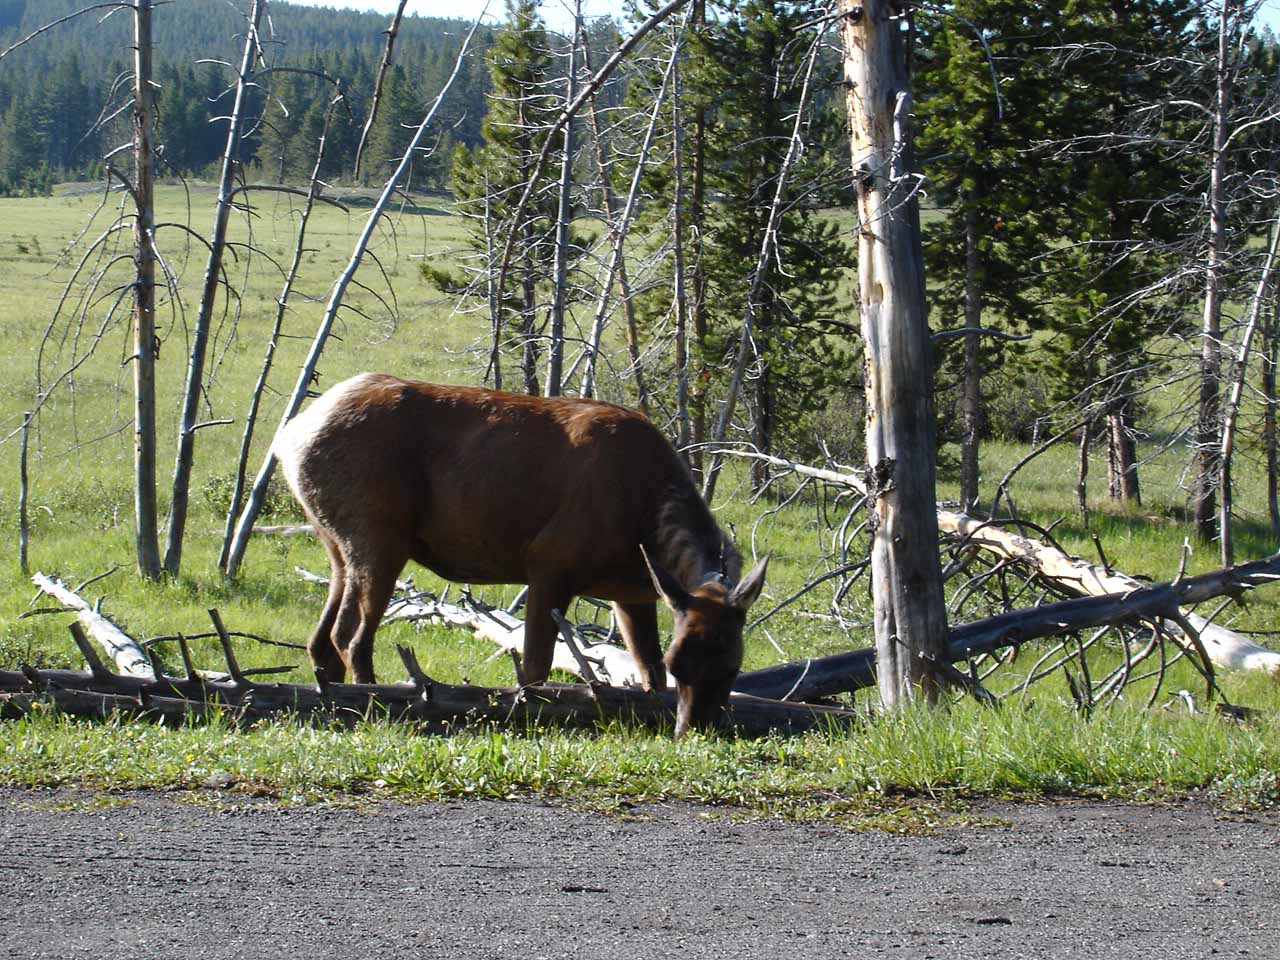 Towards the end of the Virginia Cascade loop road, we saw this elk grazing right next to the one-way road